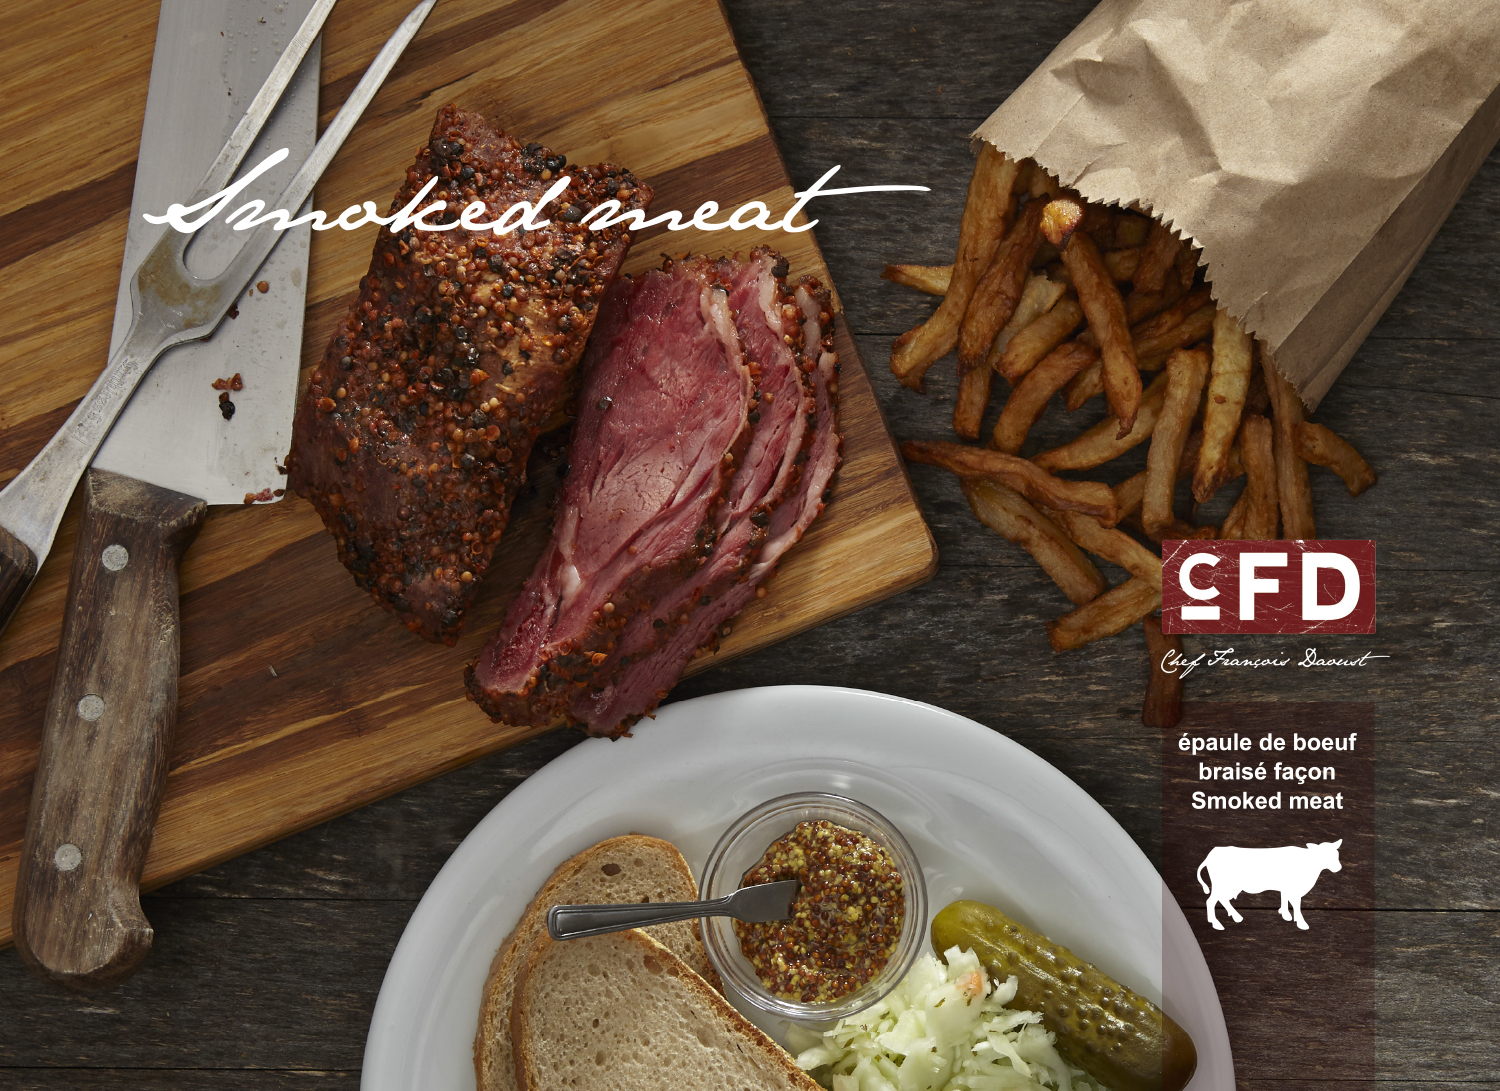 Chef+Francois+Daoust+-epaule+boeuf+smoked+meat.jpg